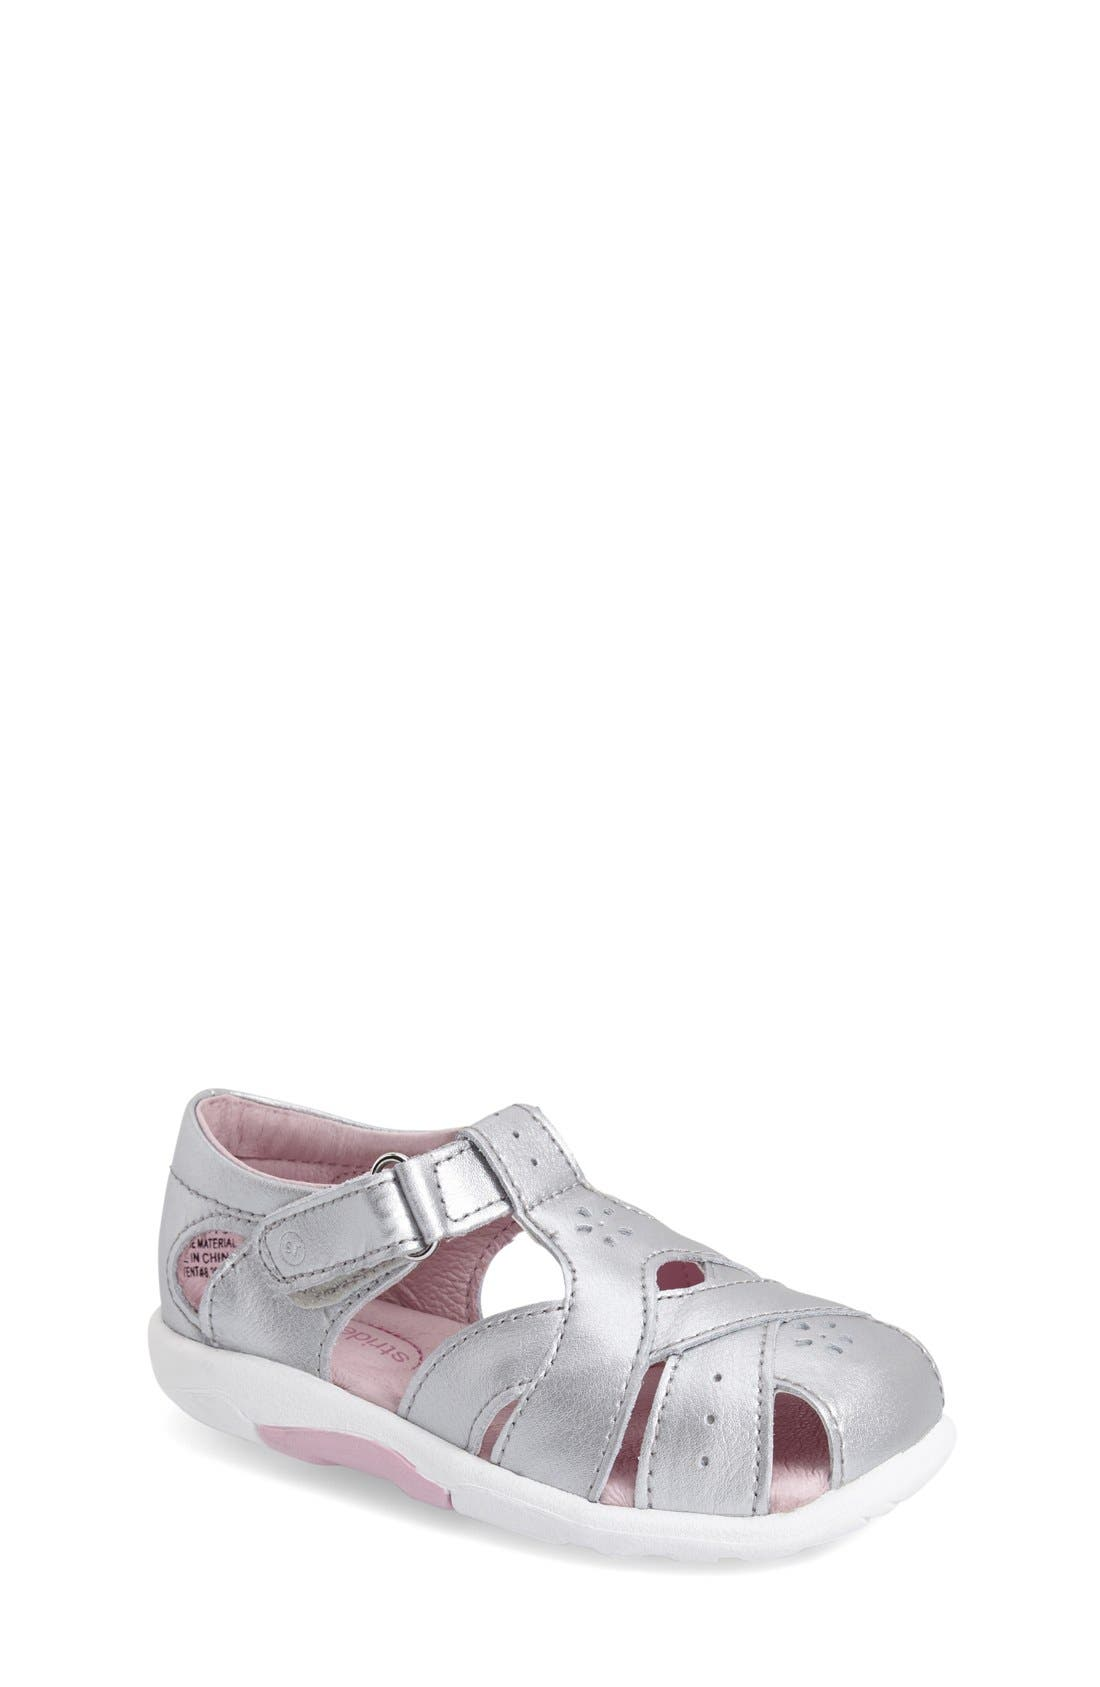 Alternate Image 1 Selected - Stride Rite 'Tulip' Sandal (Baby, Walker & Toddler)